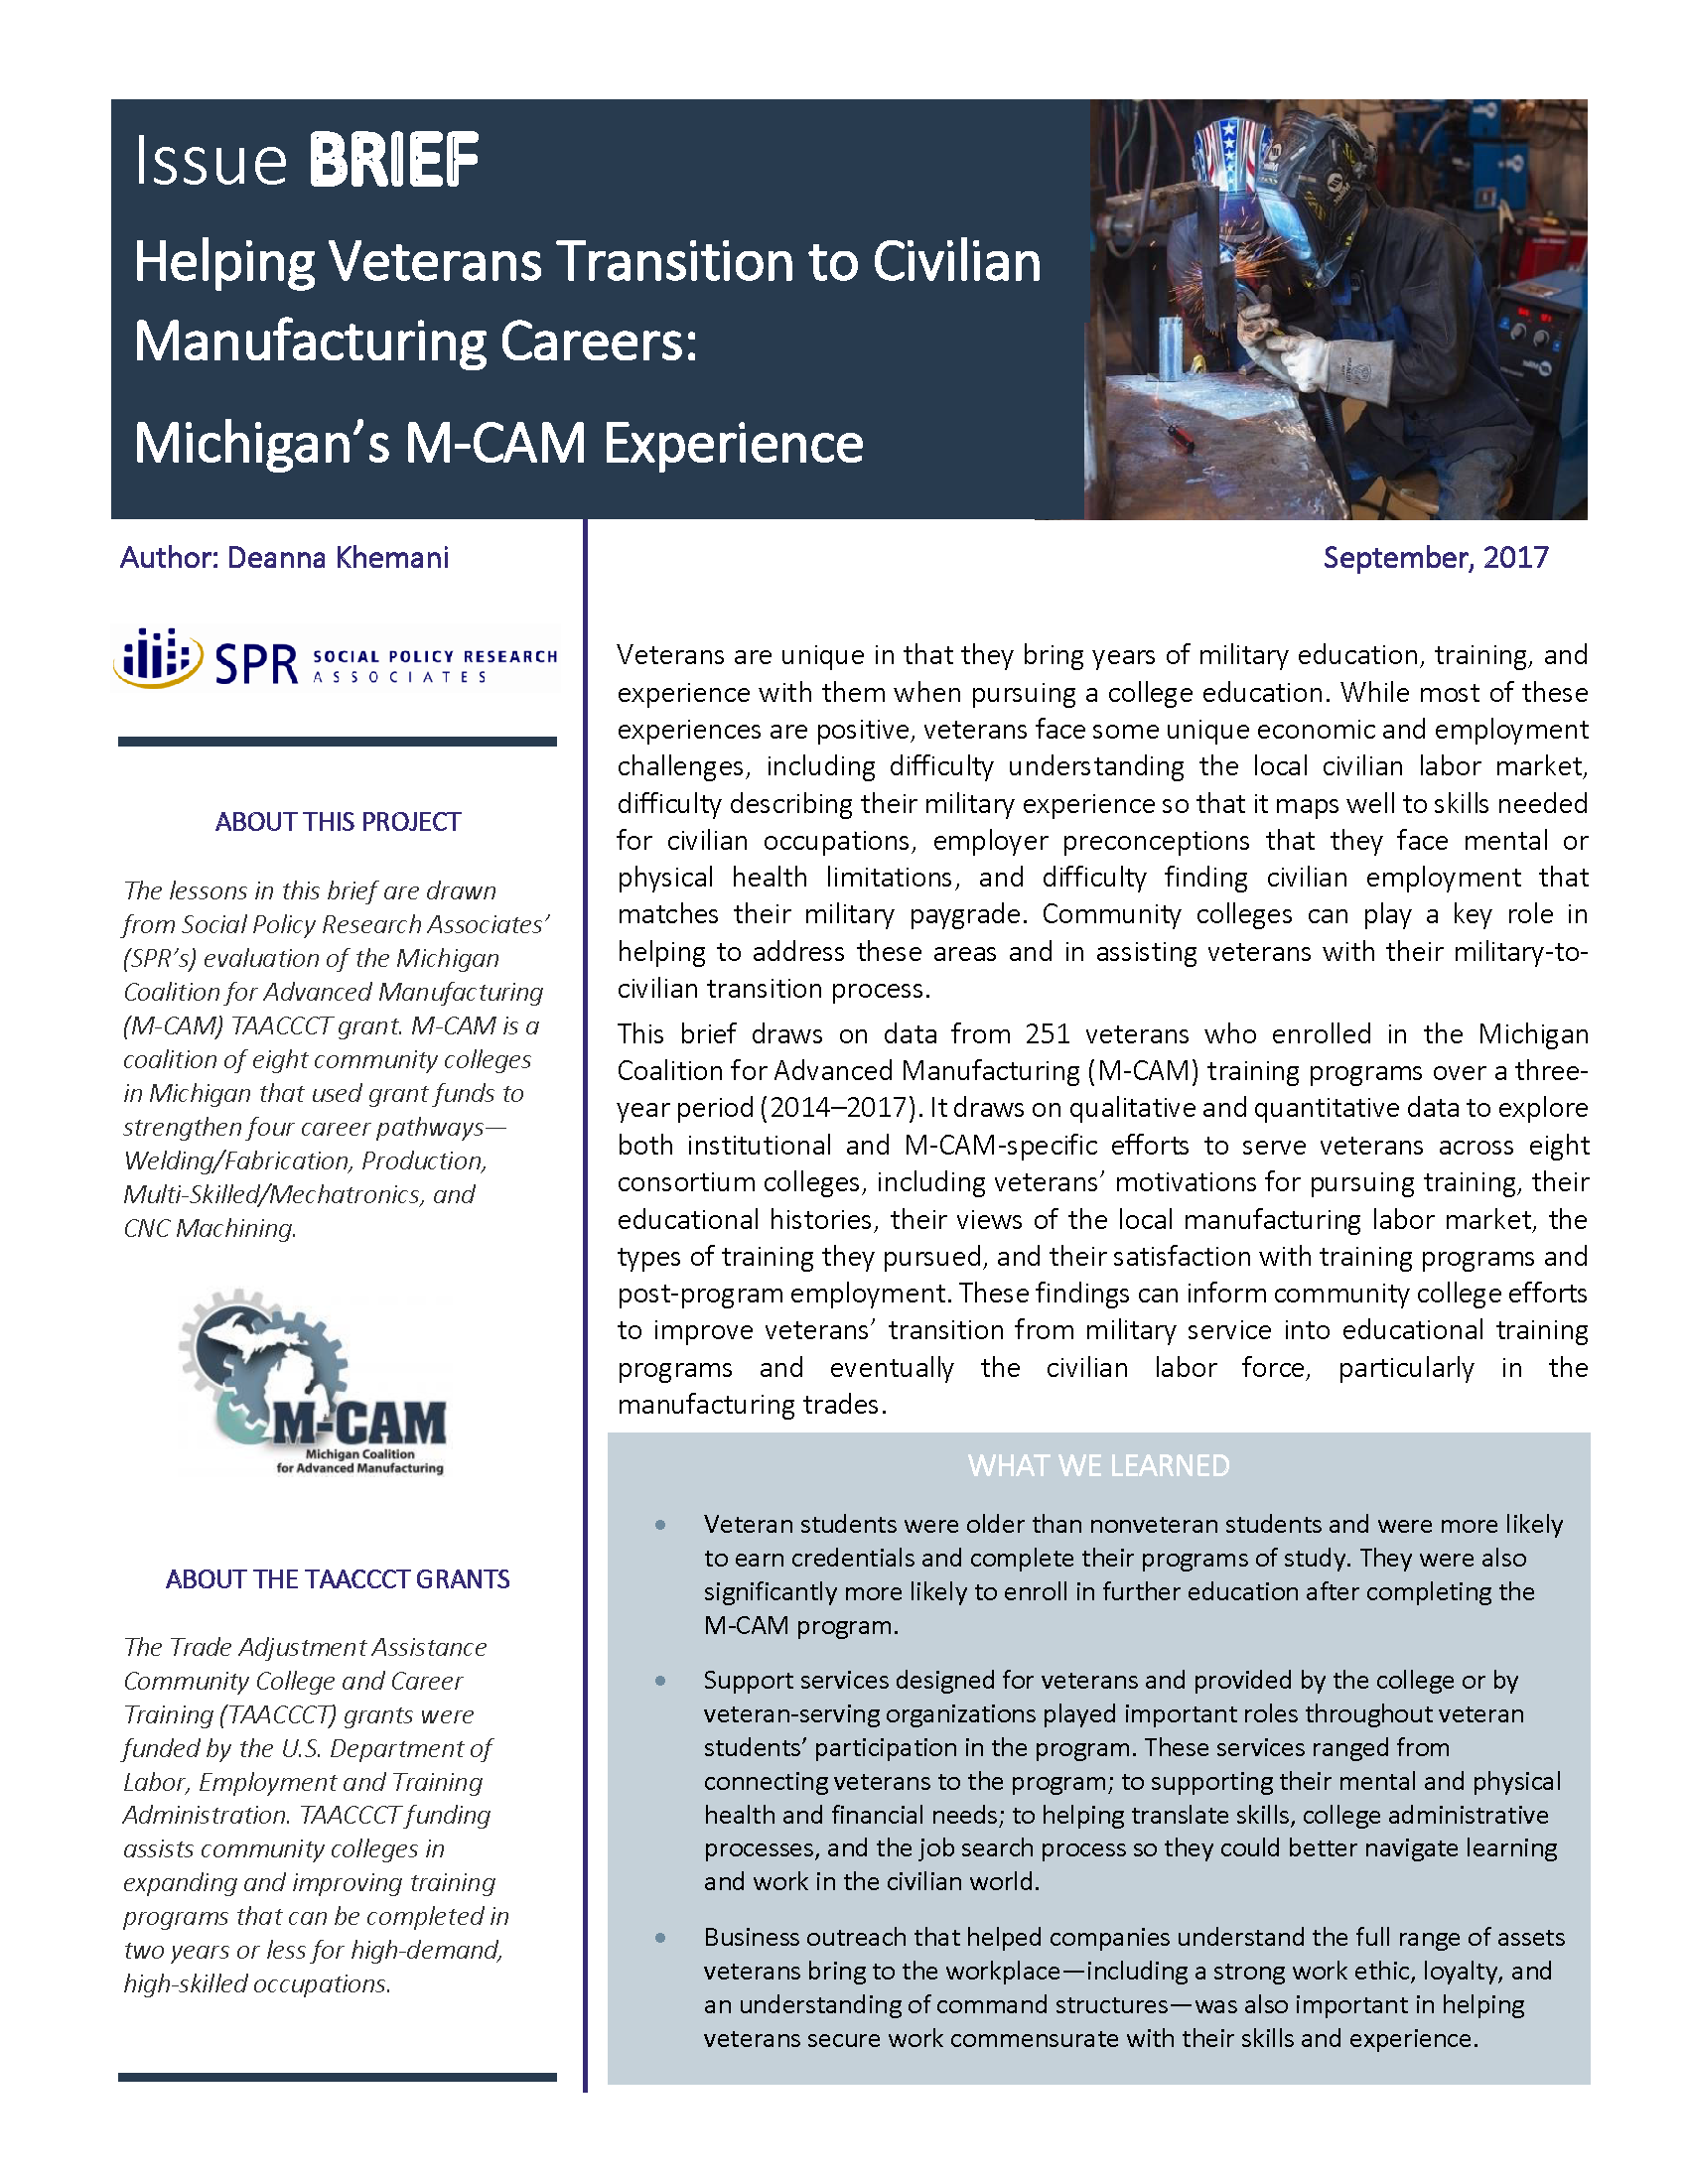 Cover of Helping Veterans Transition to Civilian Manufacturing Careers: Michigan's M-CAM Experience Brief